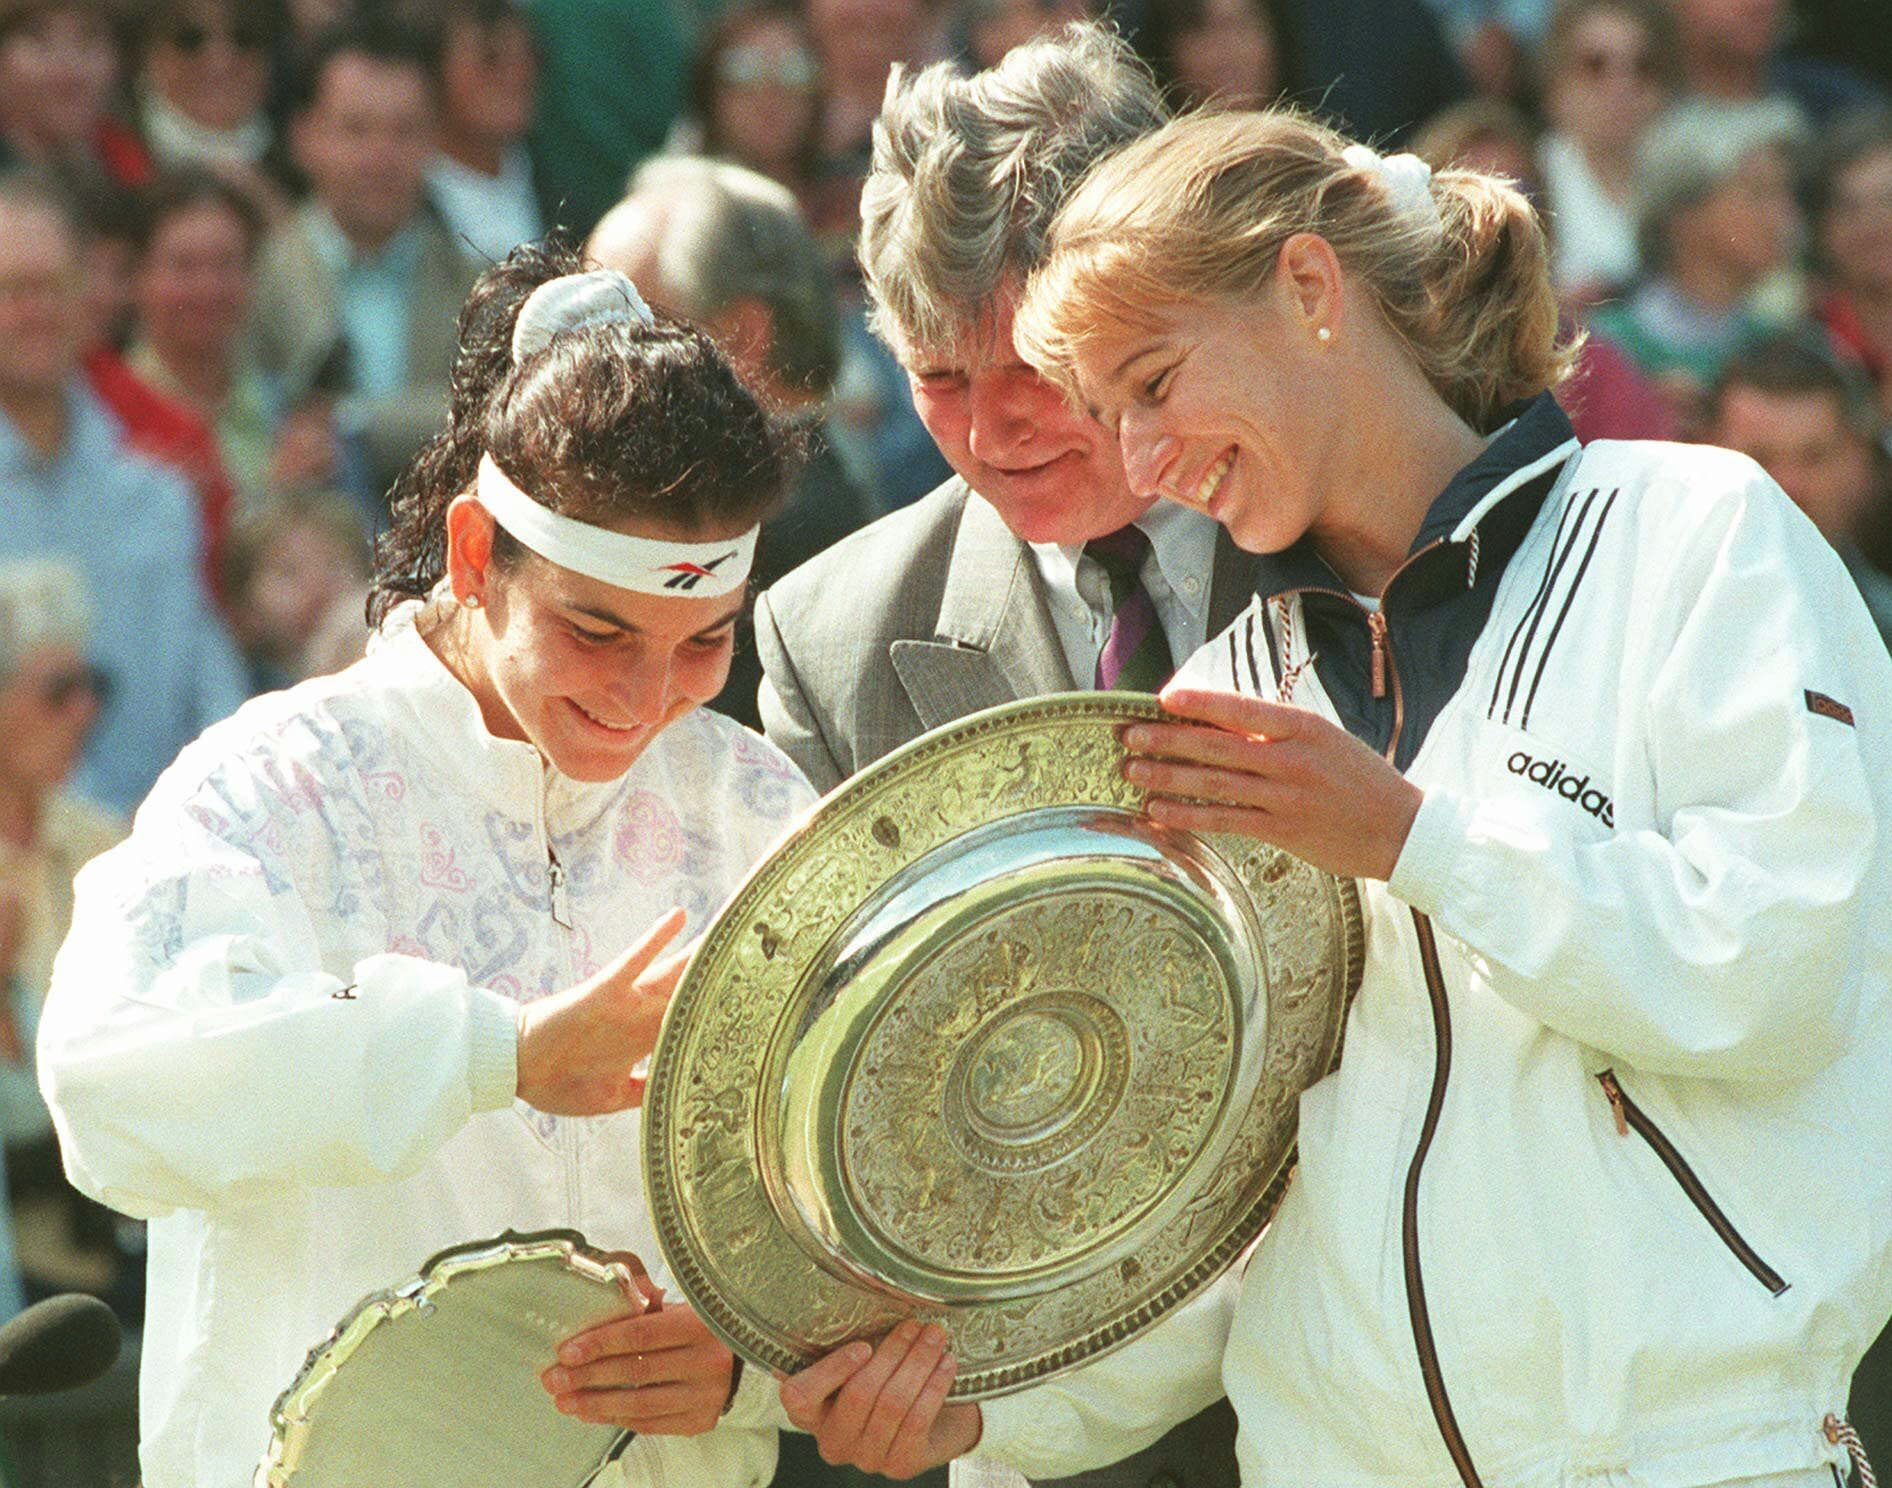 FILE - In this July 6, 1996, file photo, 1996 women's singles champion Steffi Graf, right, examines the the winners trophy with the runner up, Arantxa Sanchez-Vicario, left and Tournament referee Alan Mills after the presentation ceremony on Wimbledon's Centre Court. Graf won the match in straight sets 6-3, 7-5 to capture her seventh singles title. (AP Photo/Dave Caulkin, File)